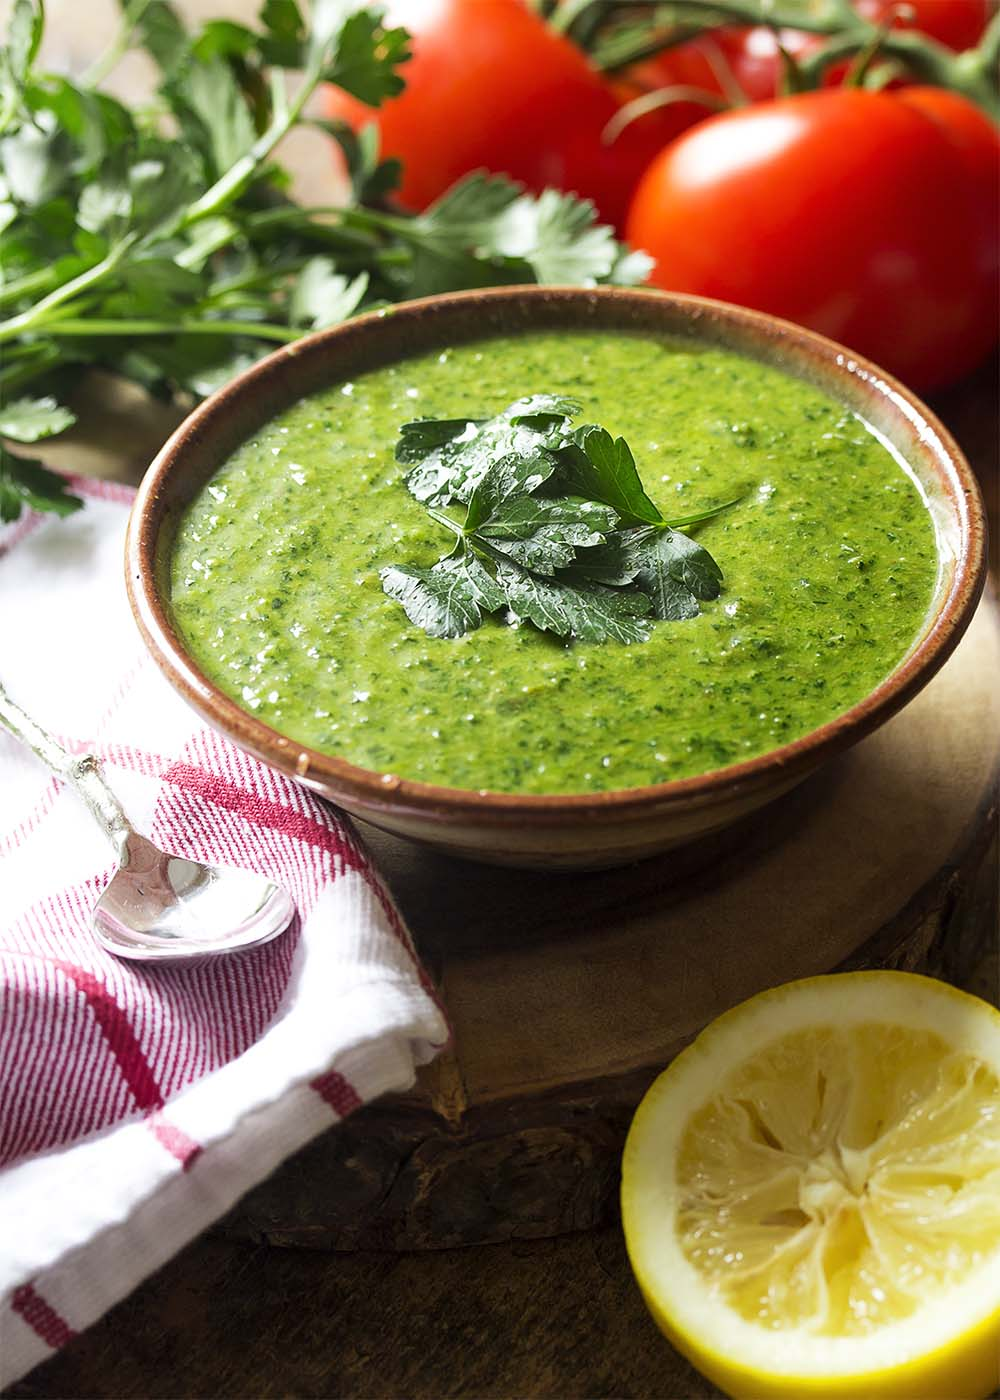 A bowl of green Italian verde sauce arranged with parsley and lemon.